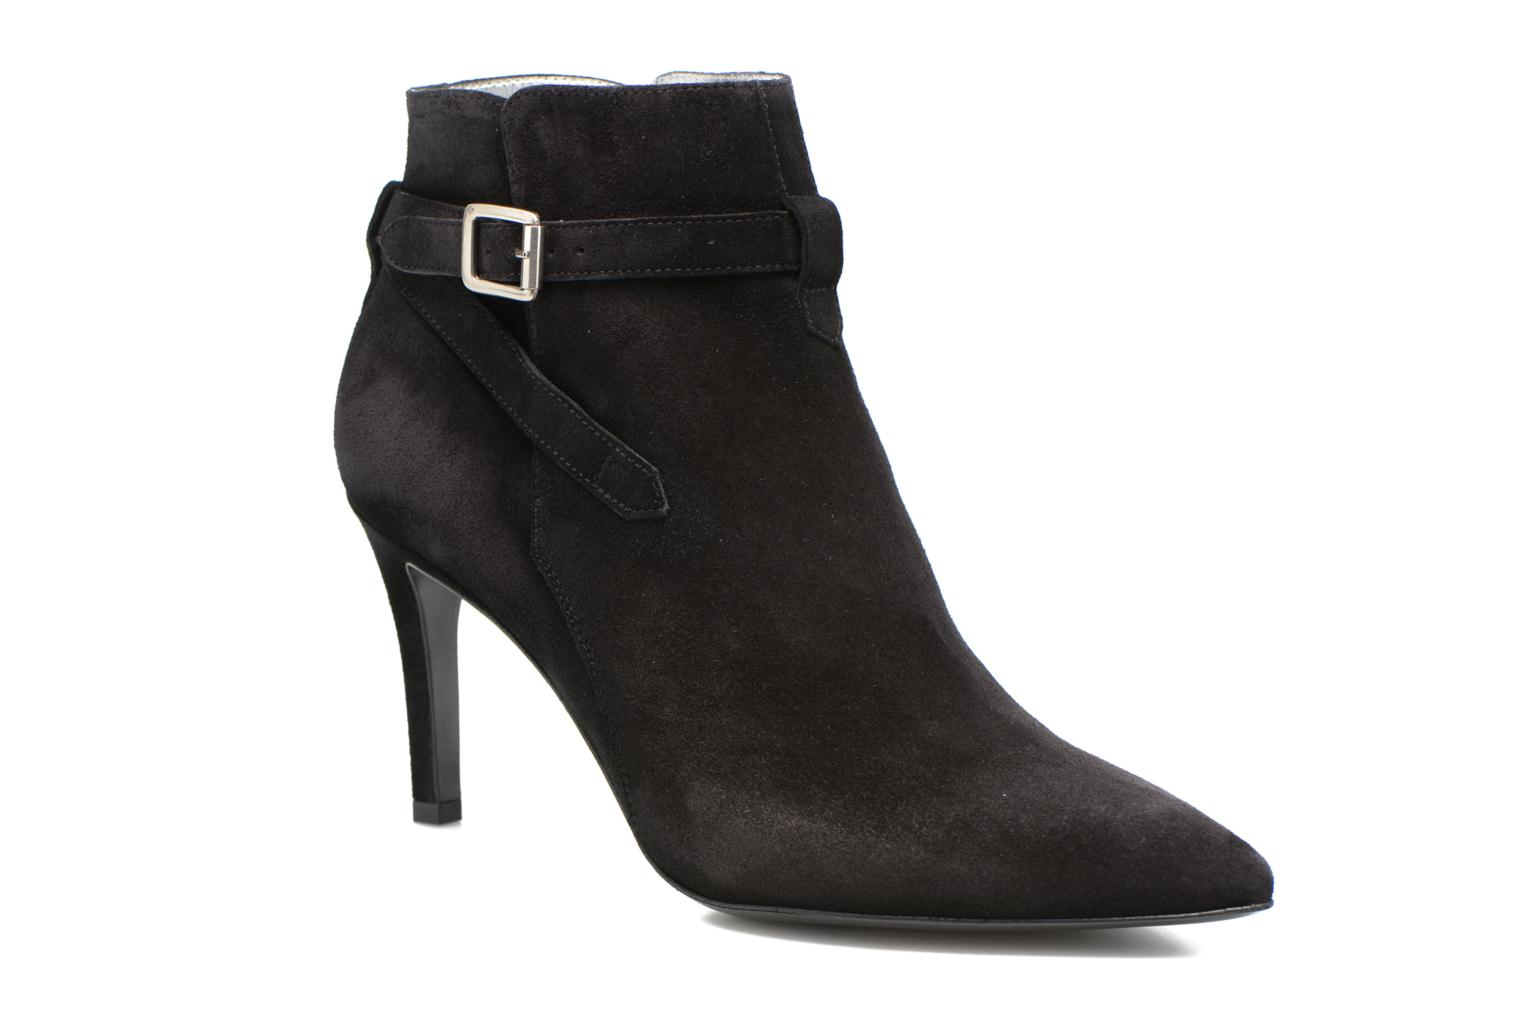 Itlys 7 Boot Ankle Strap Sonia extra noir